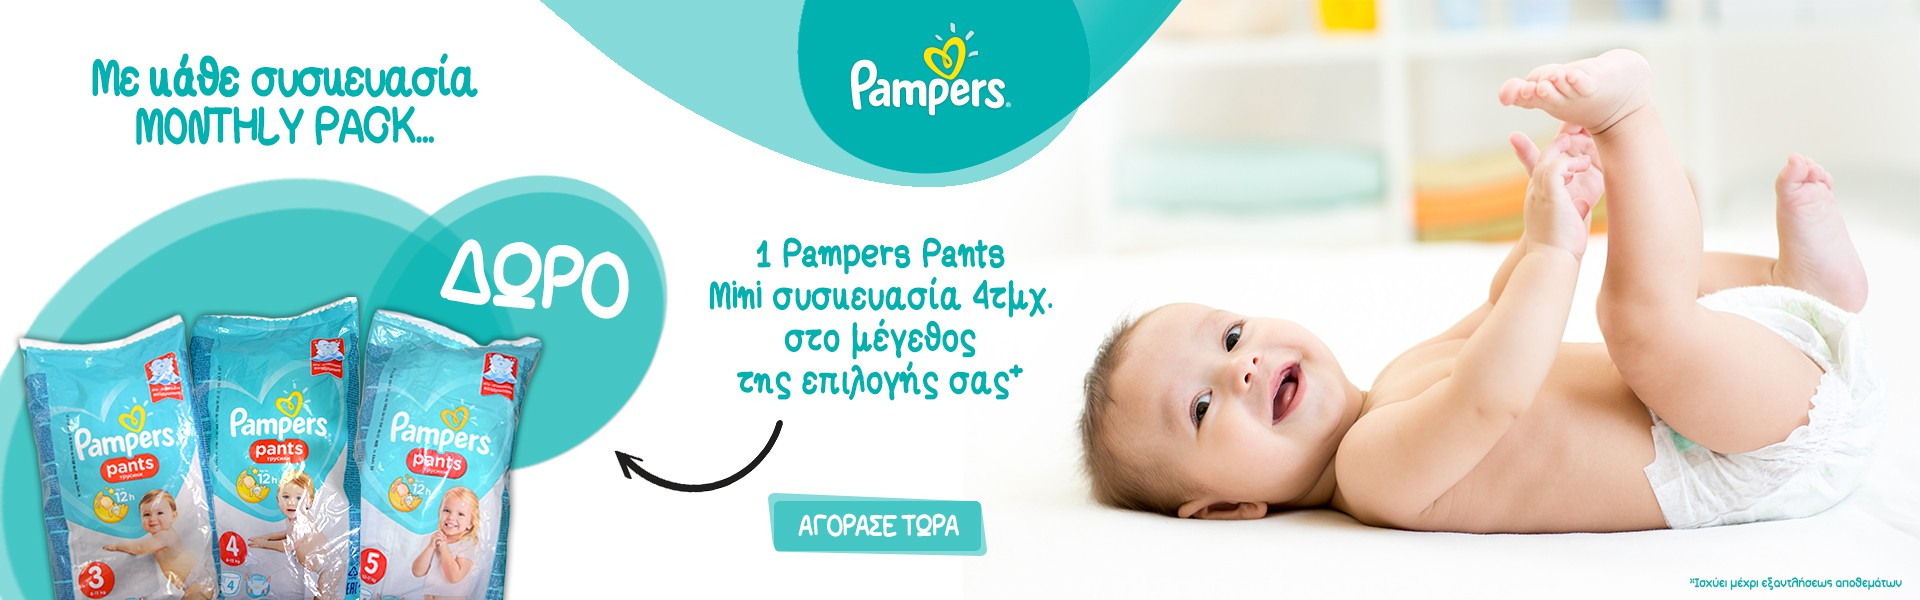 Pampers pants gift monthly 1920